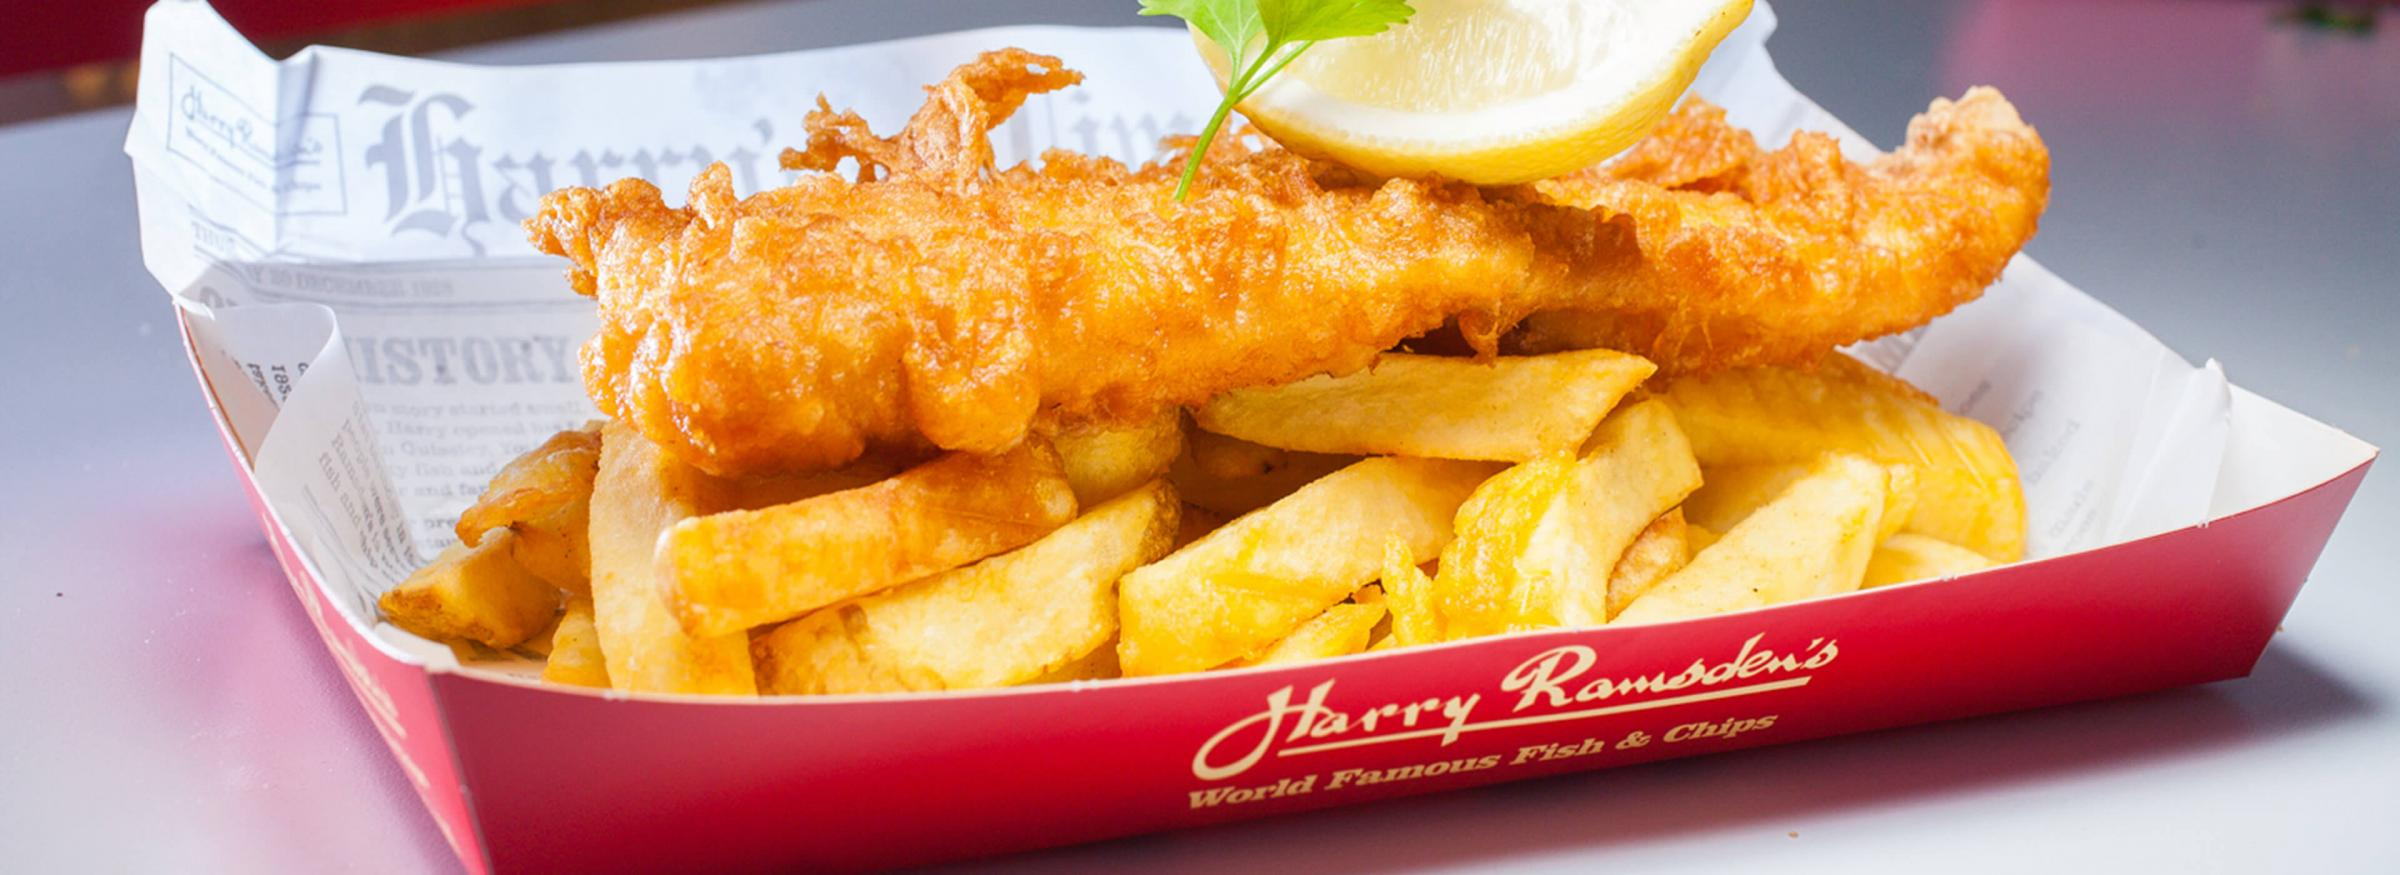 Here's how you can get 2 for 1 at Harry Ramsden's in Brighton (saving up to £13.99)